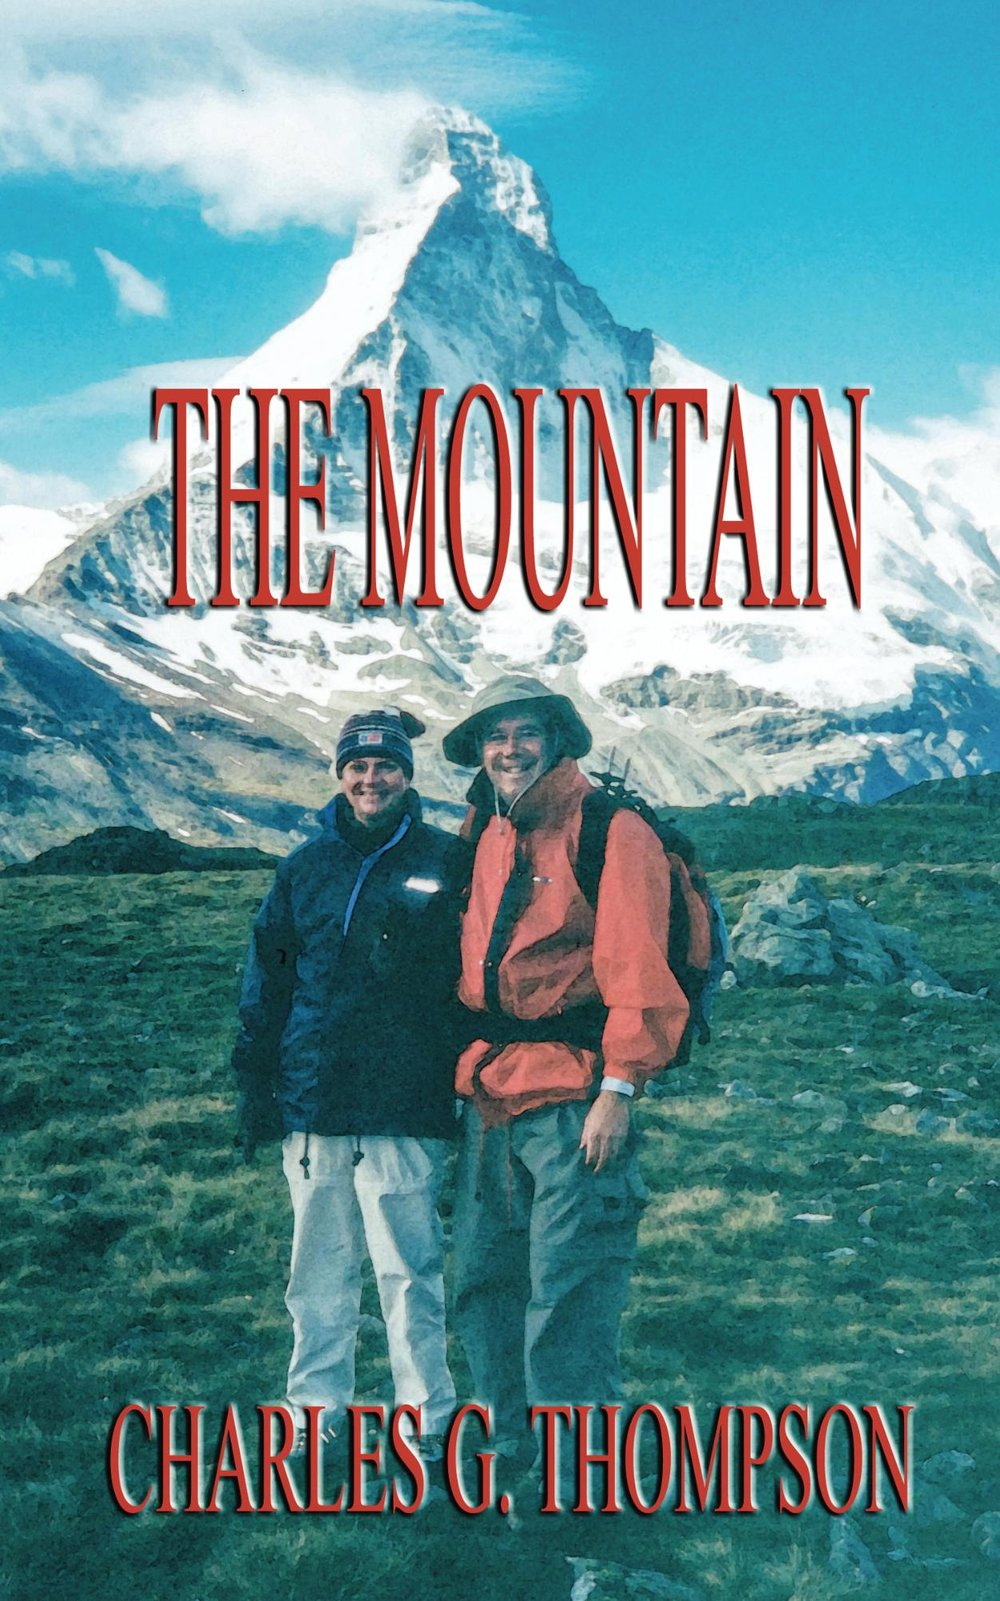 The_Mountain_Cover_for_Kindle.jpg